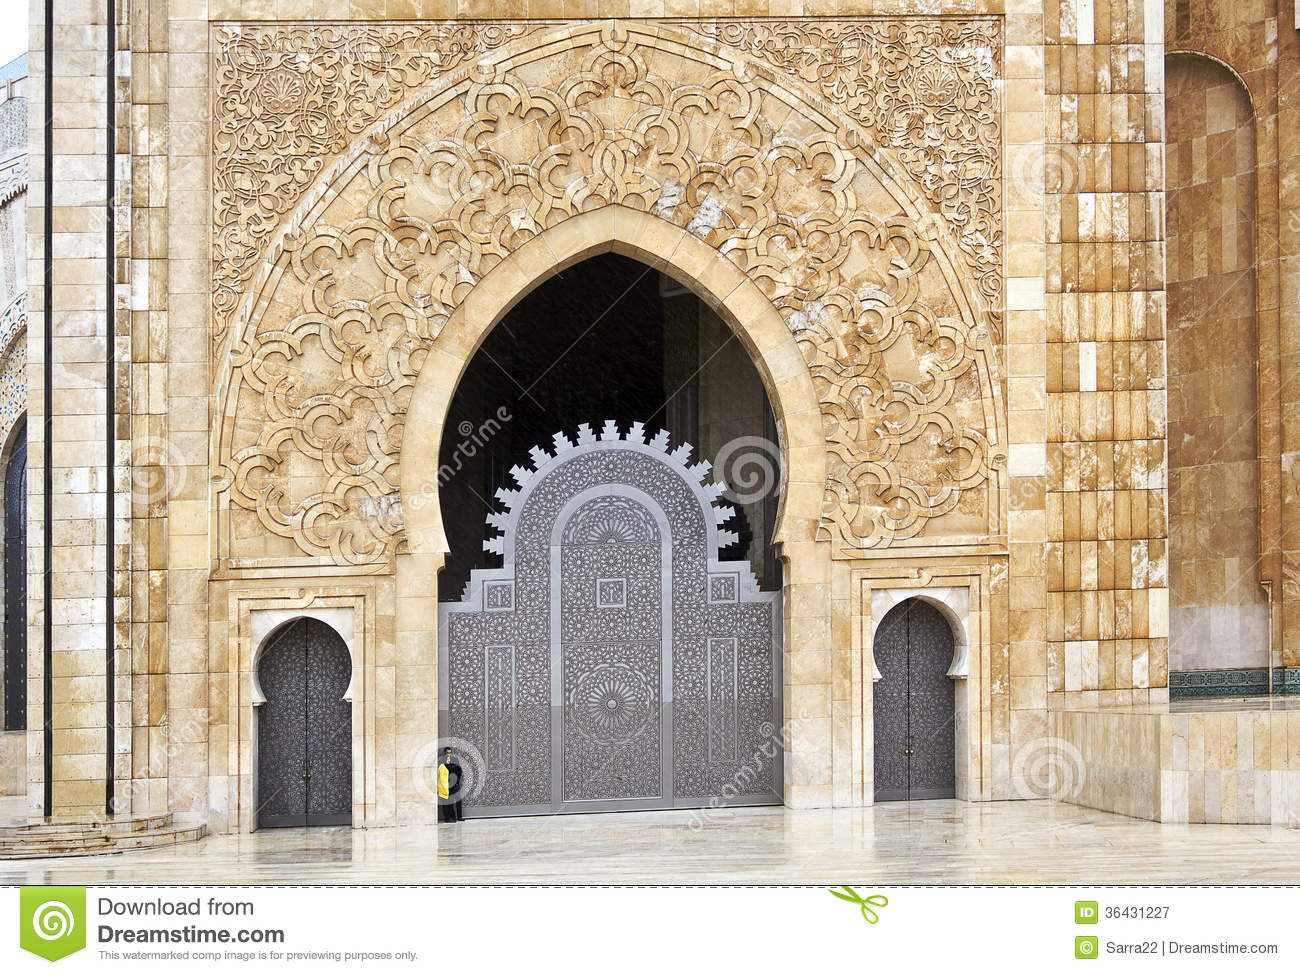 975 #83A328 Ornate Exterior Brass Door Of Hassan II Mosque In Casablanca Morocco. picture/photo Ornate Front Doors 39791300